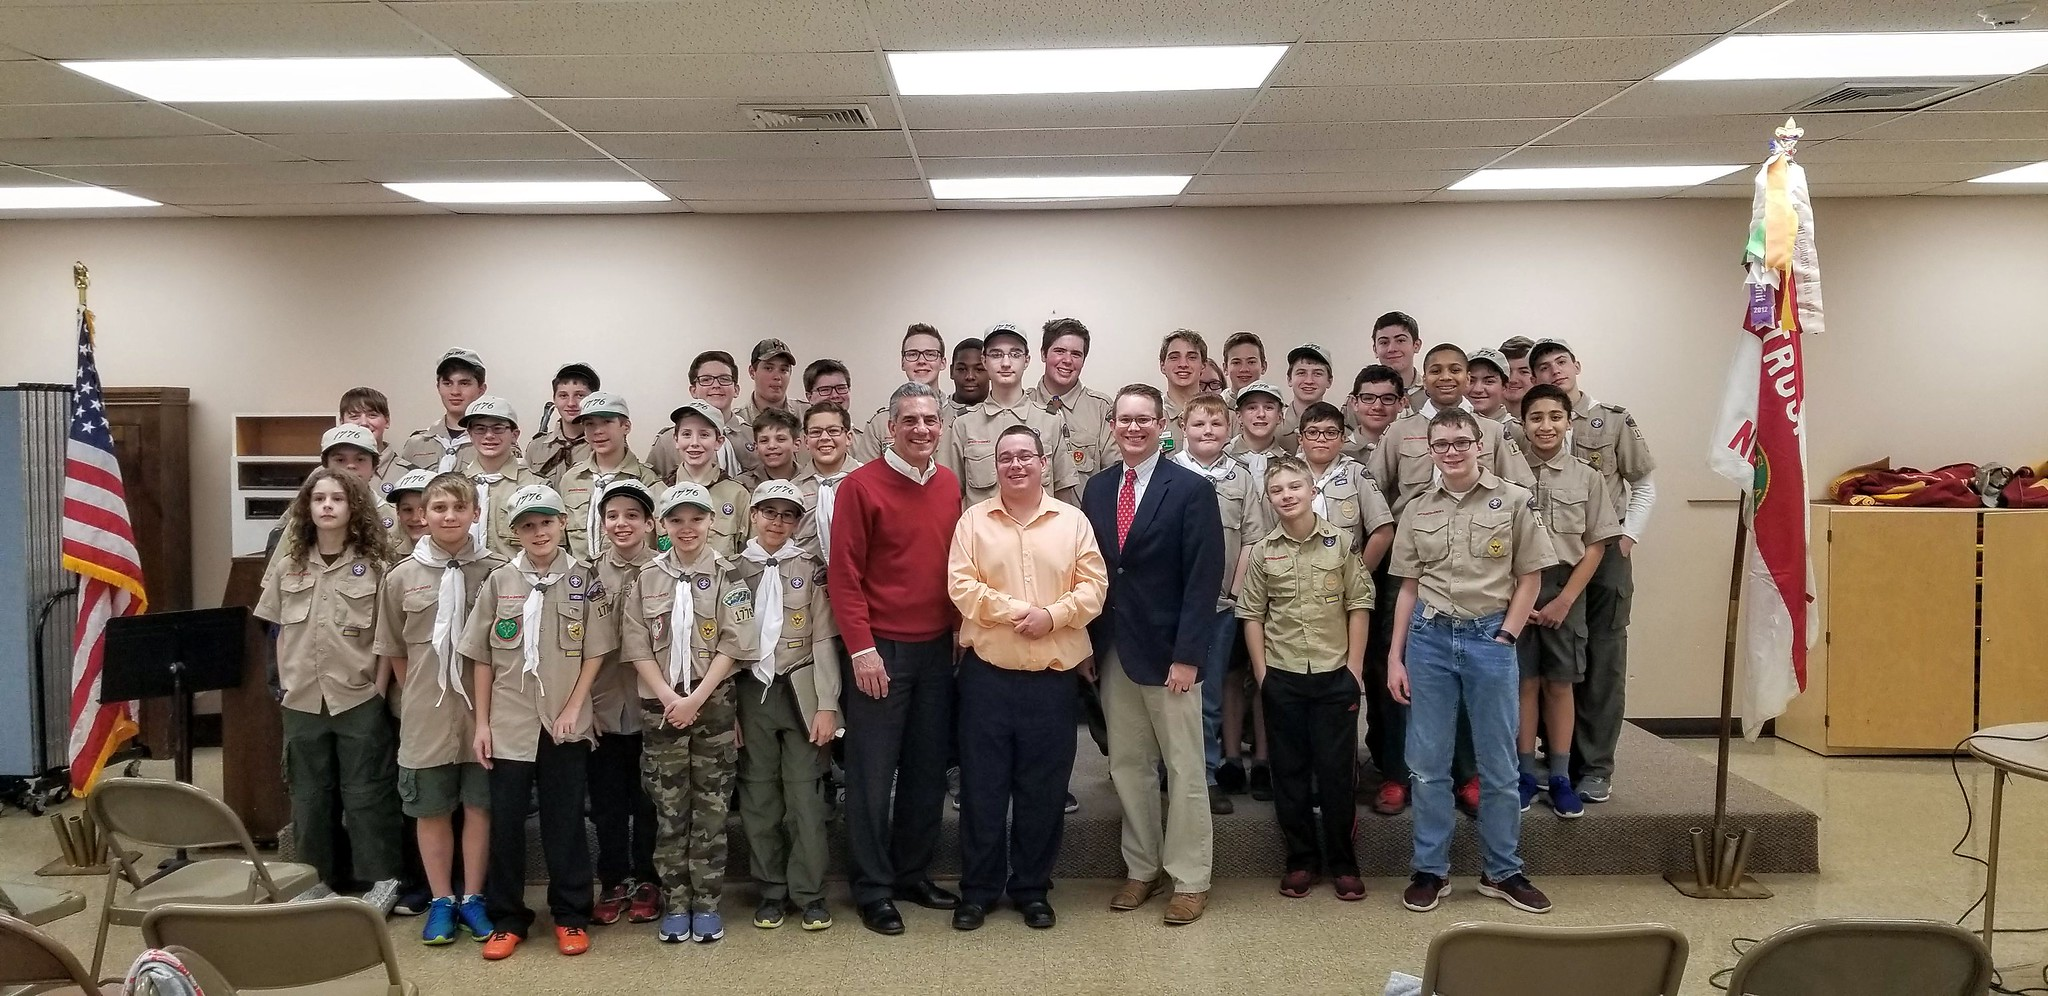 Fwd: Troop 1776 Meeting Picture